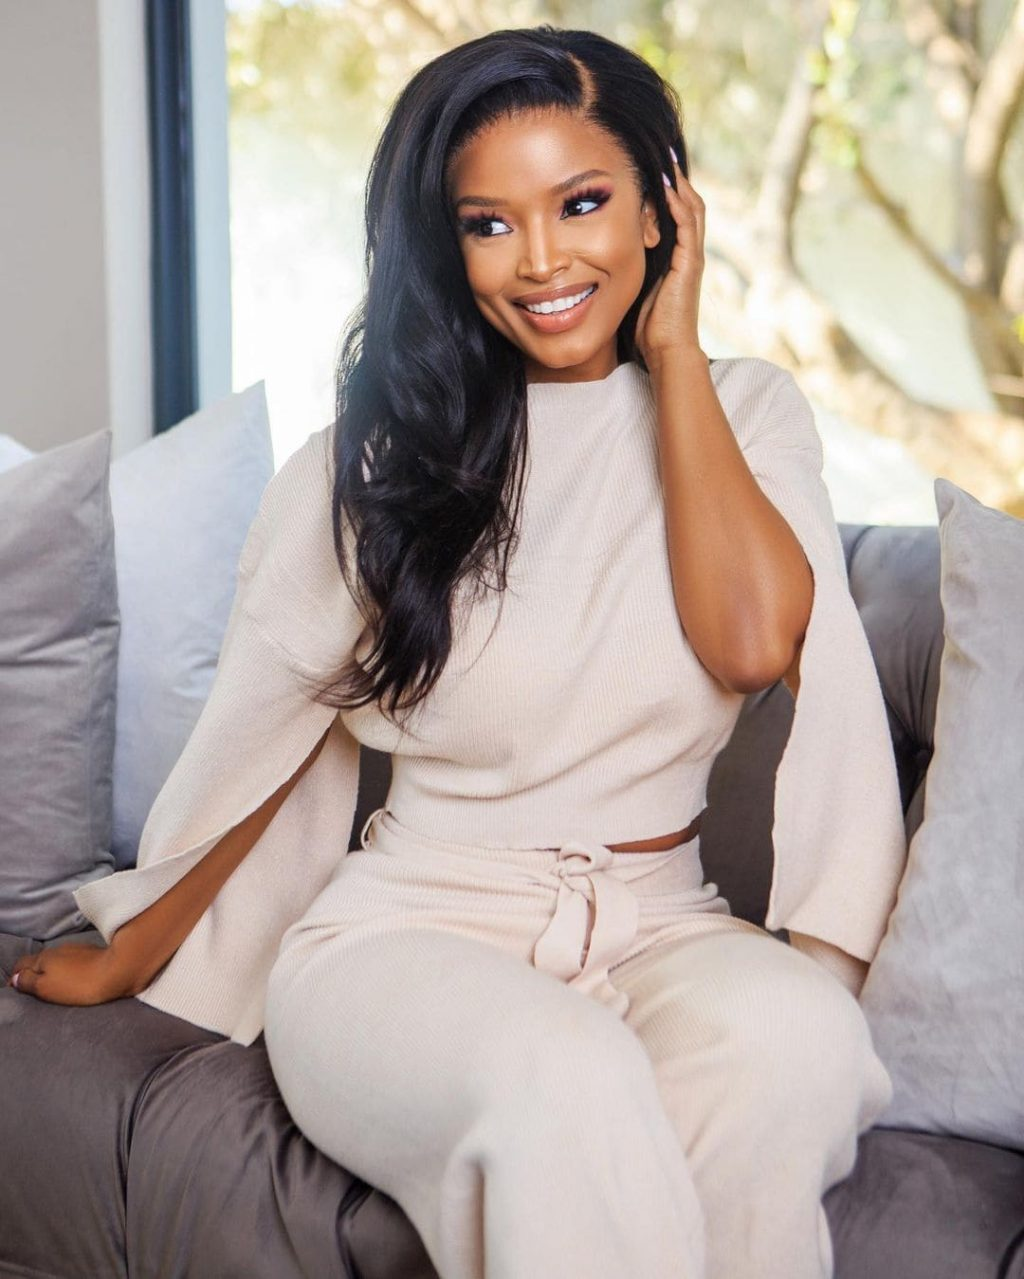 Ayanda Thabethe reveals why she has no plans of dating or marrying again anytime soon